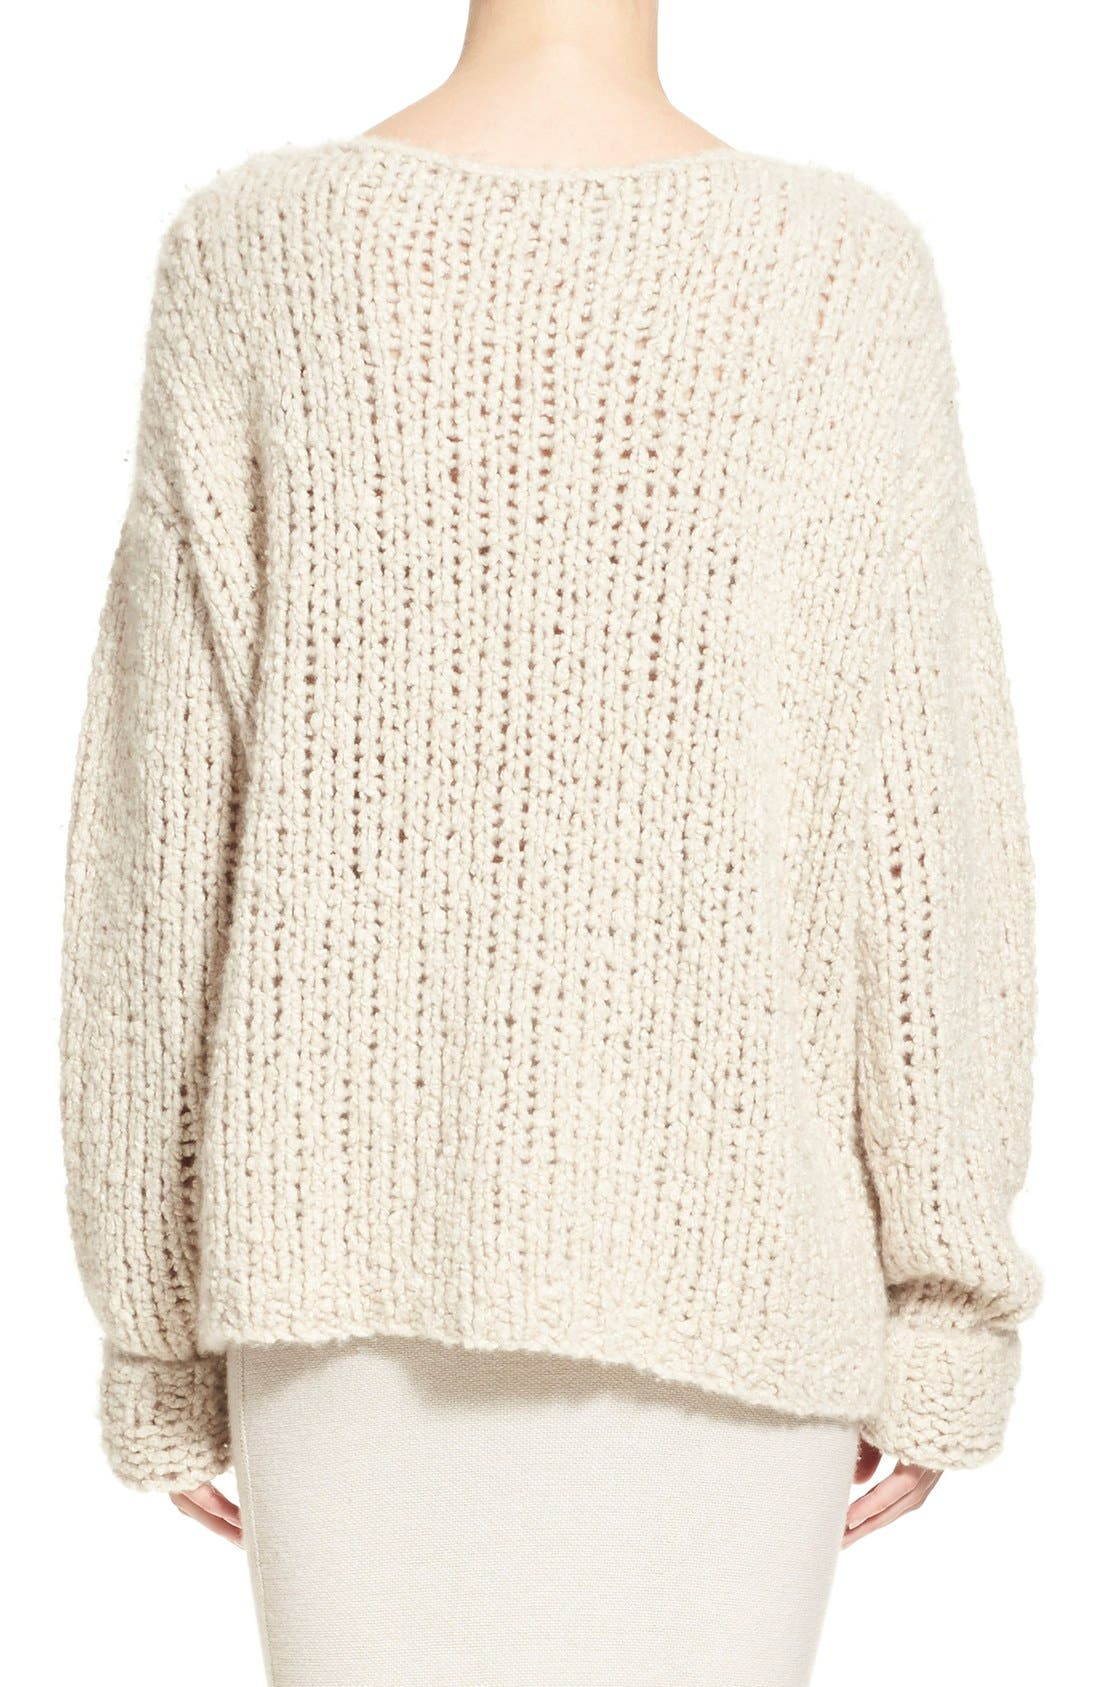 Donna KaranCollection Hand Knit Cashmere Sweater,                             Alternate thumbnail 6, color,                             282